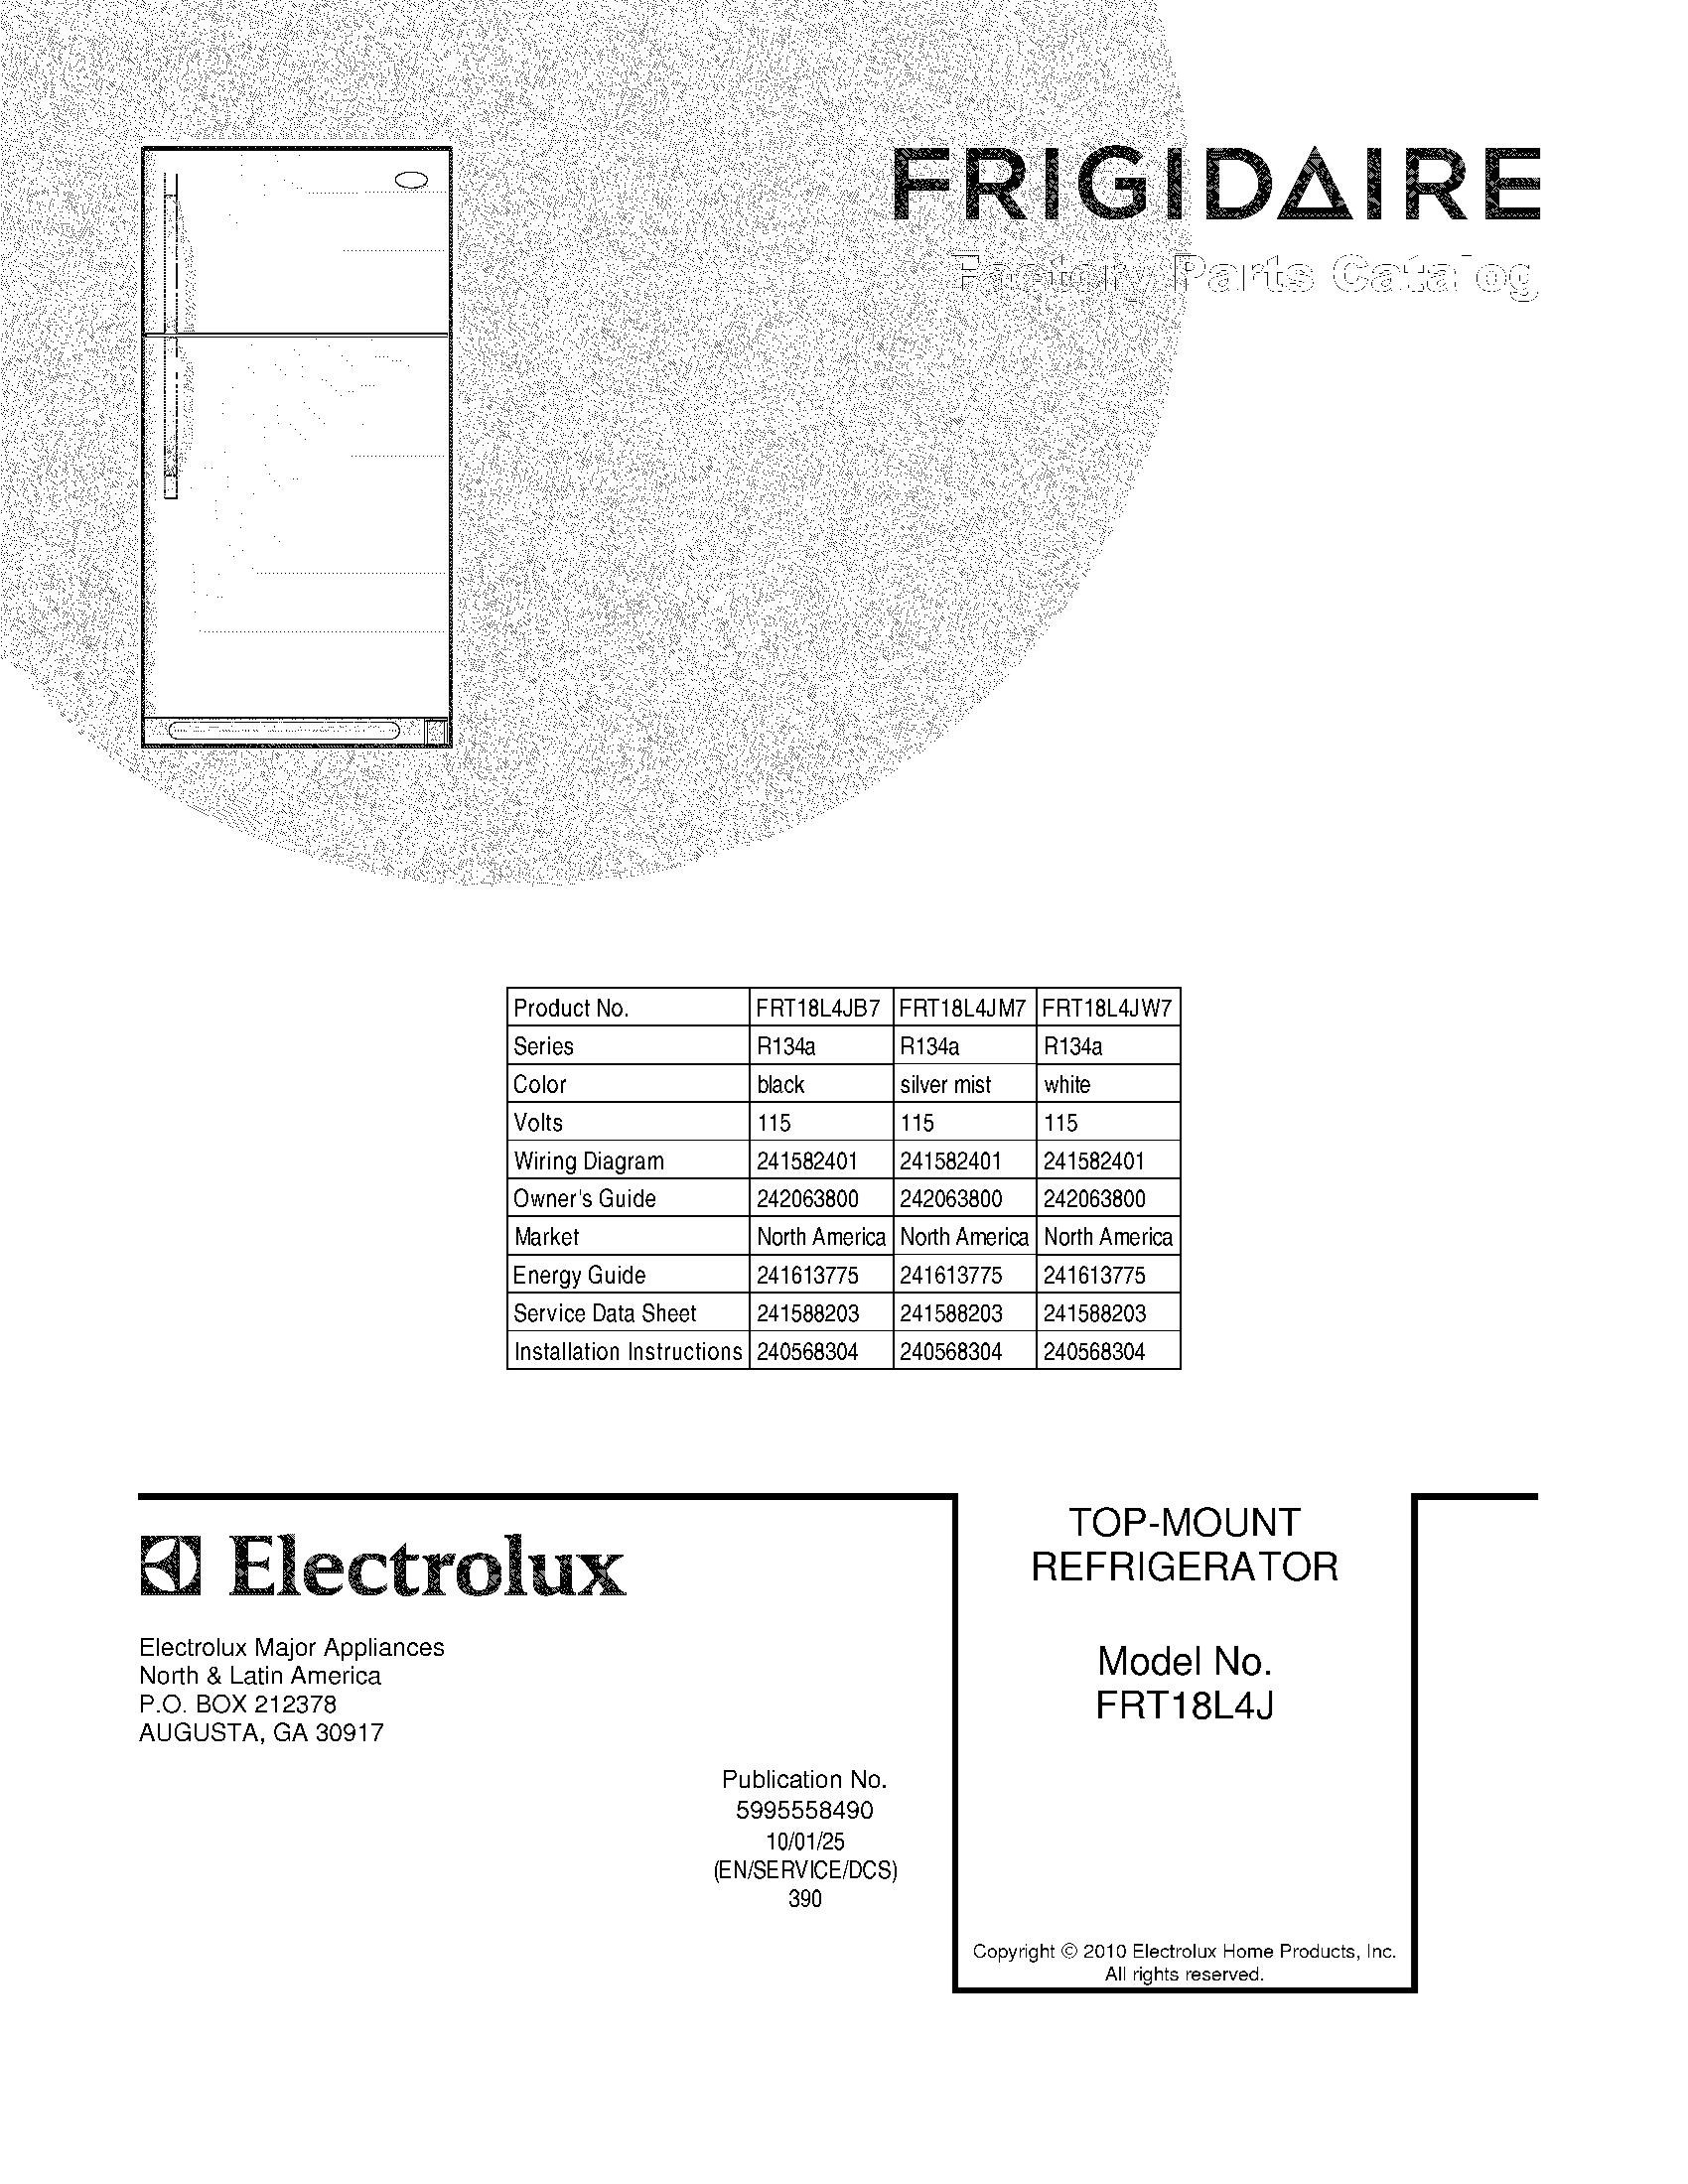 ElectroluxImg_19000101 20150717_00102196?width\=206 frigidaire refrigerator wiring schematic model frt18l4j frigidaire ice maker wiring diagram at aneh.co